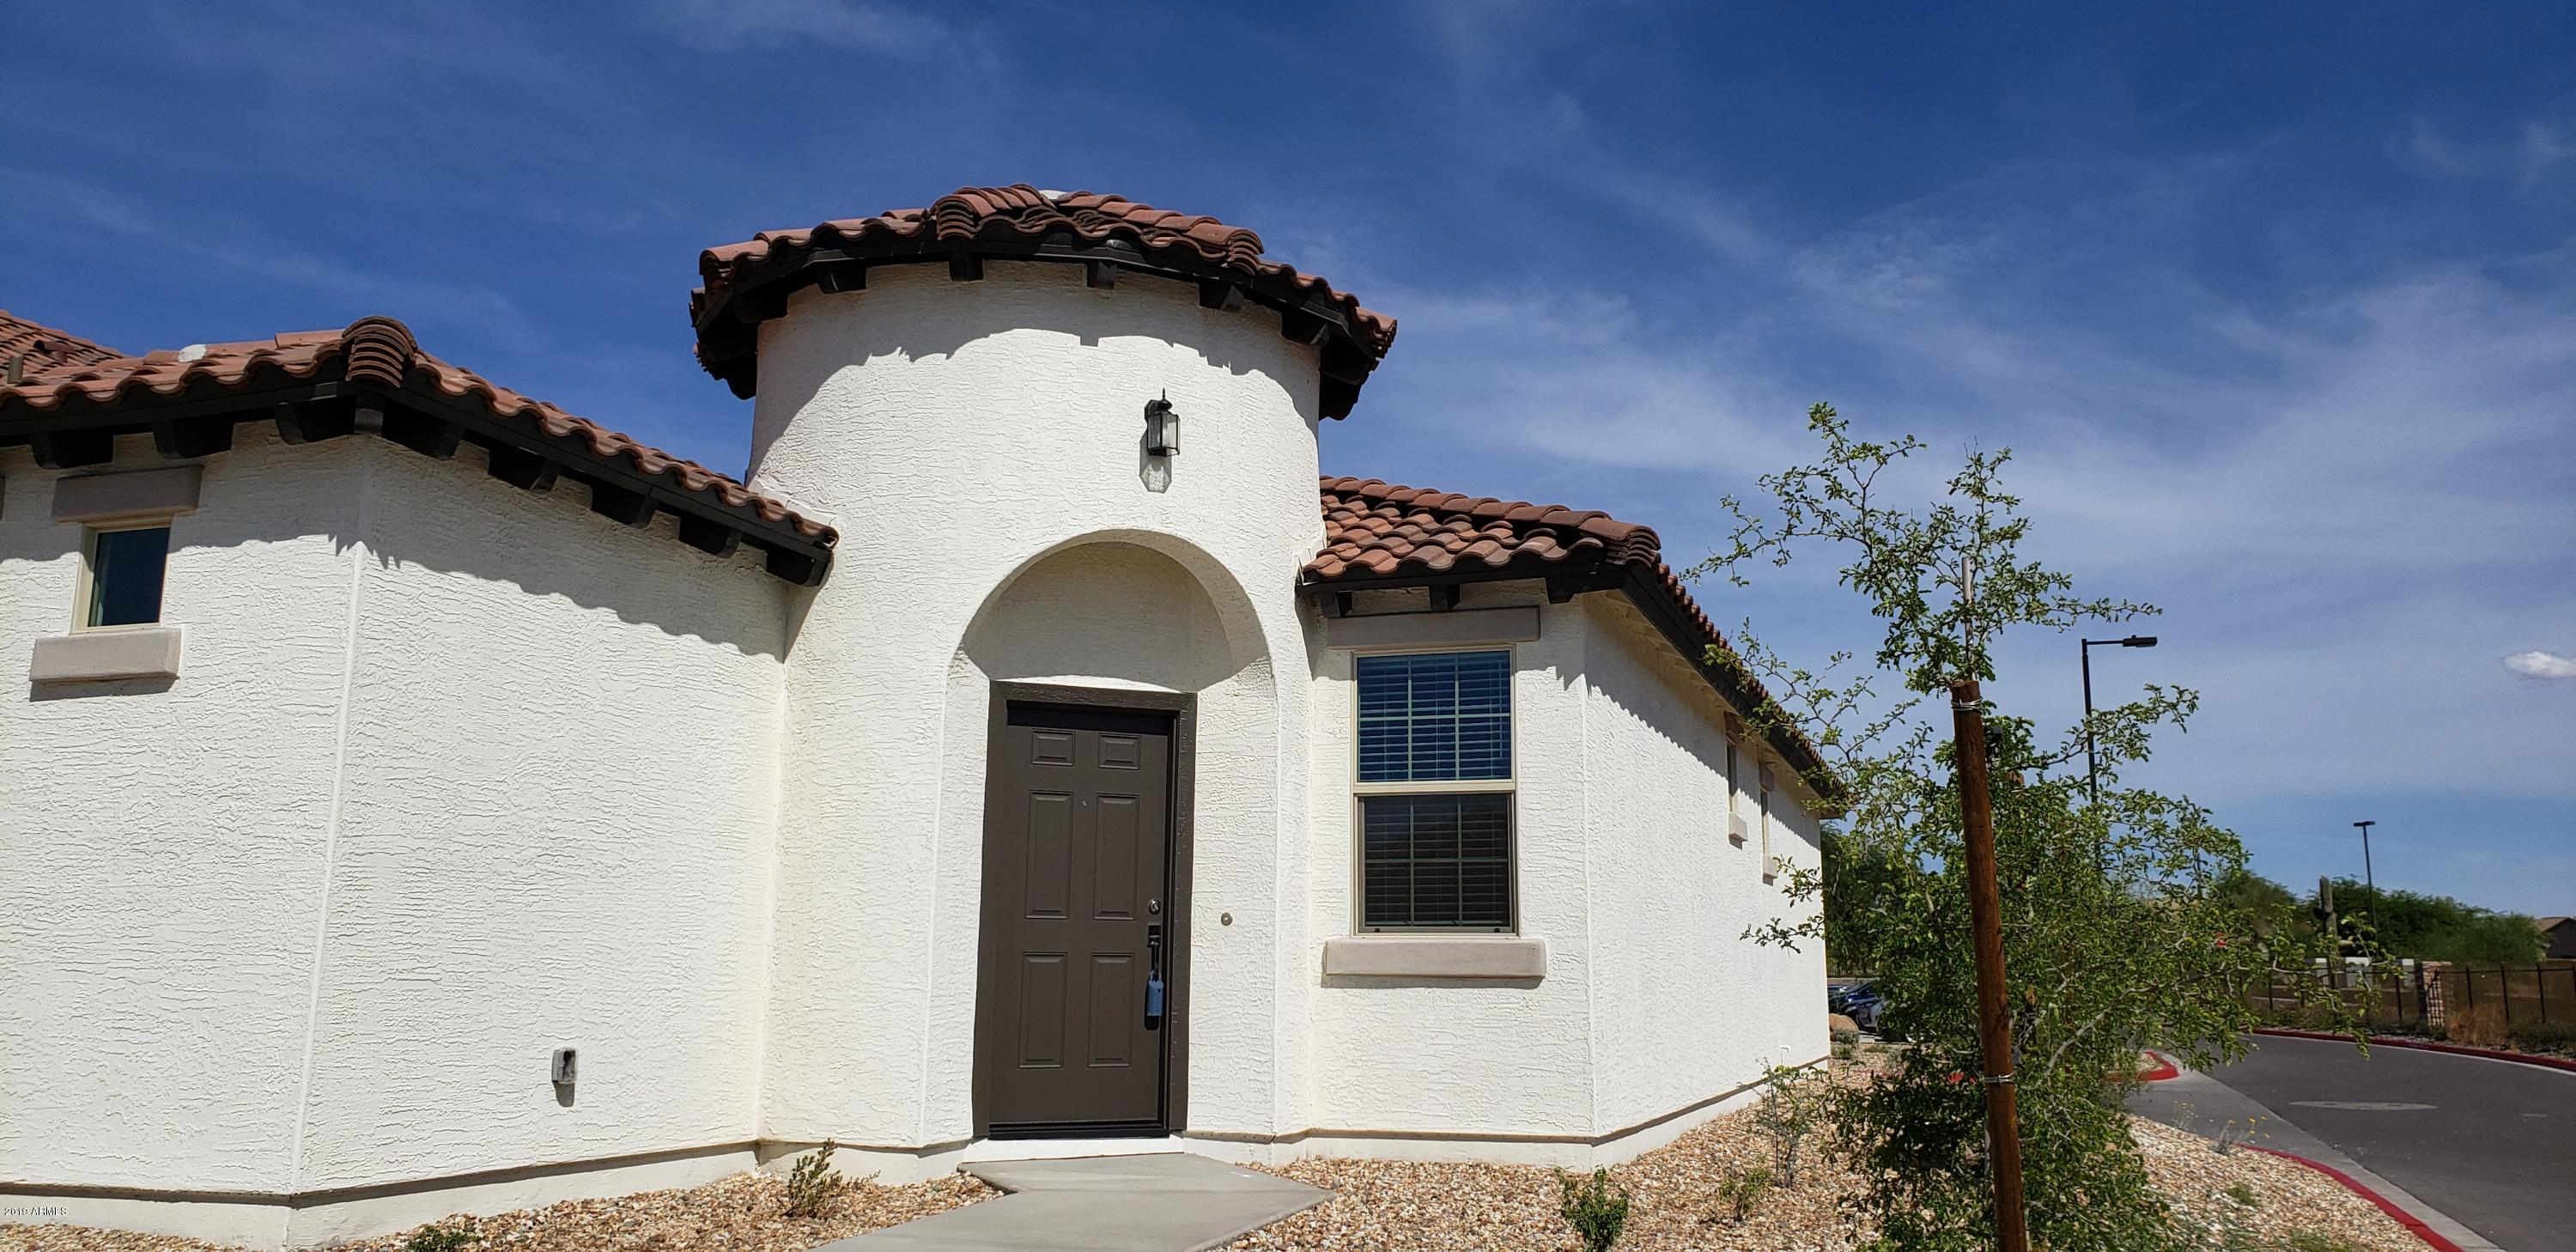 Photo of 2918 N ATHENA --, Mesa, AZ 85207